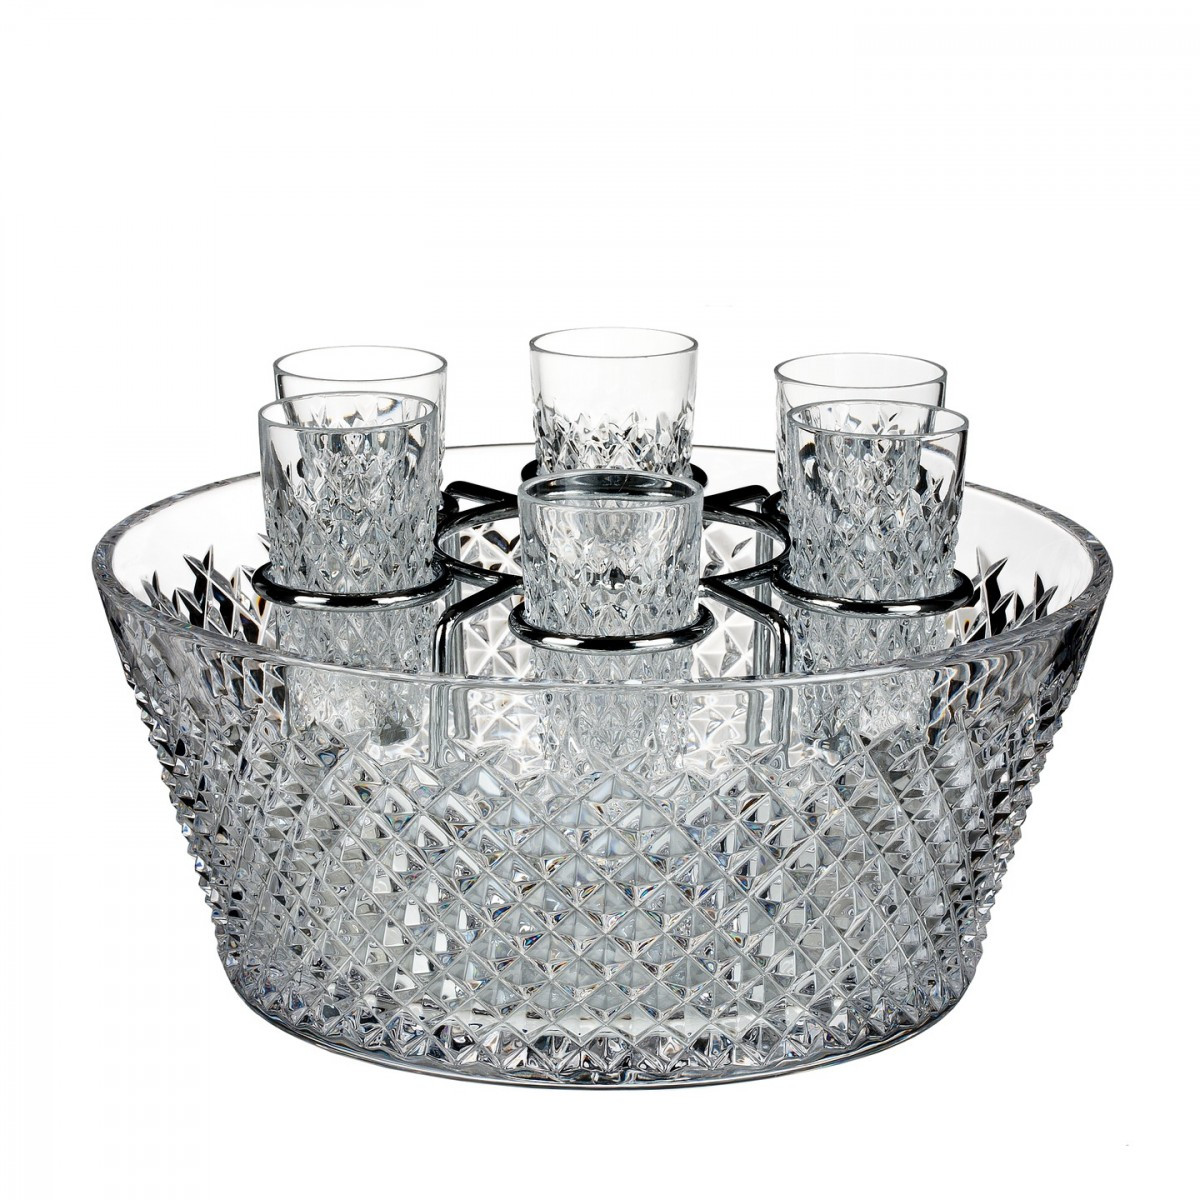 Retired Waterford Crystal Vase Patterns Of Alana 60th Anniversary Vodka Chiller with 6 Shot Glasses Limited In Alana 60th Anniversary Vodka Chiller with 6 Shot Glasses Limited Edition Of 260 Discontinued